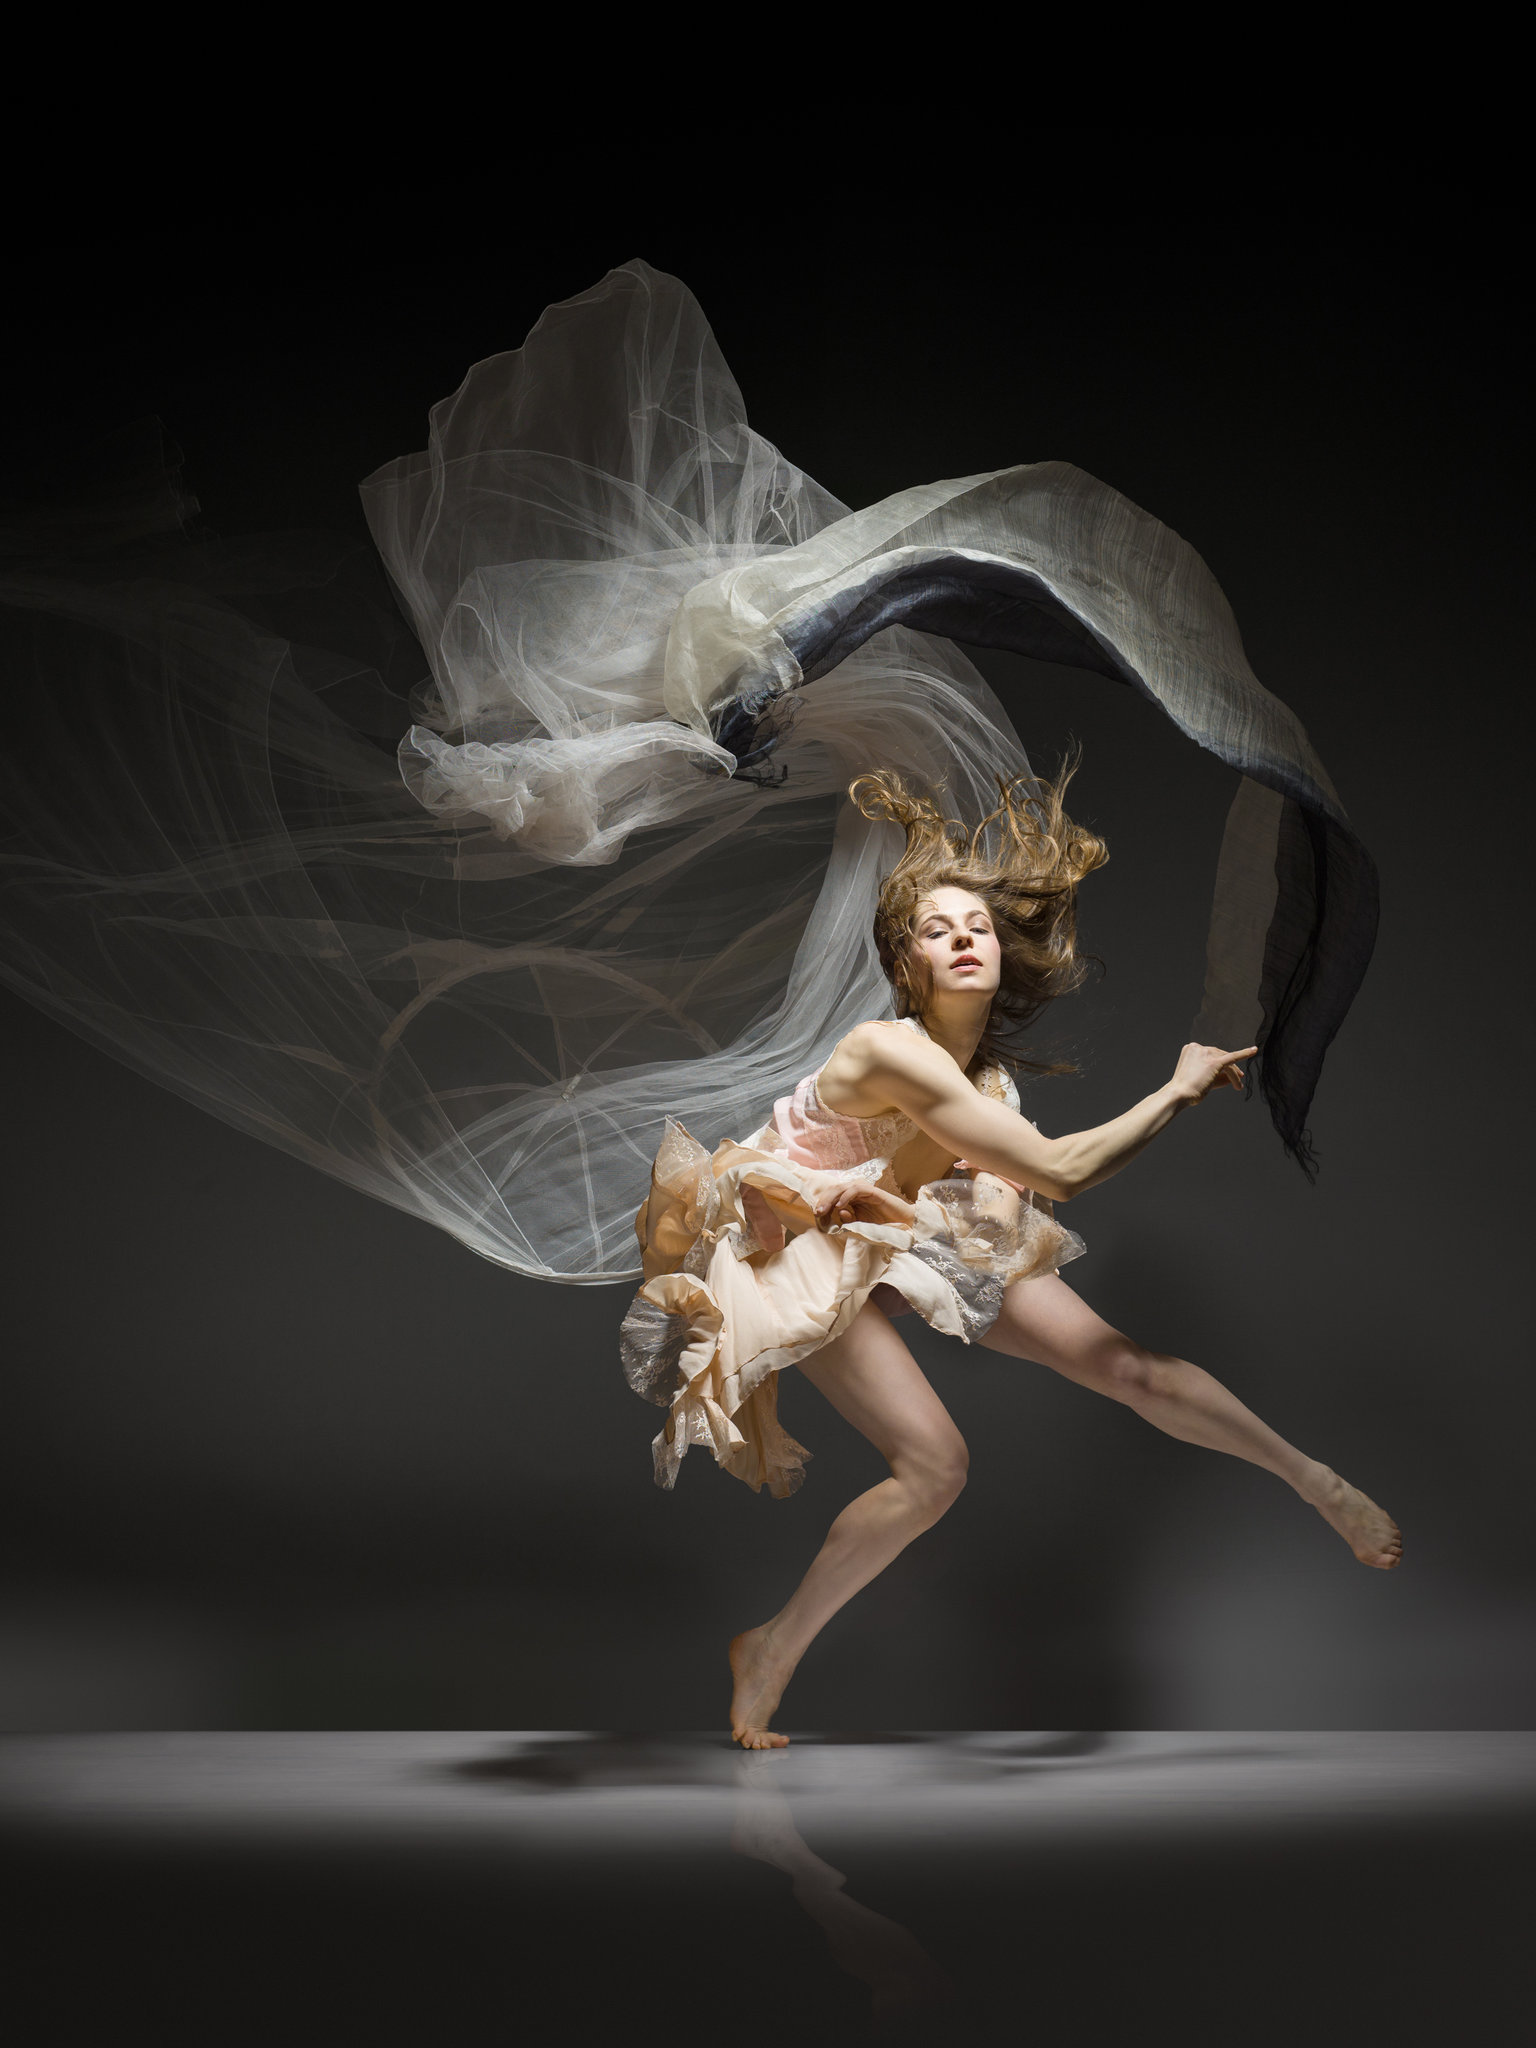 grainedephotographe-loisgreenfield9